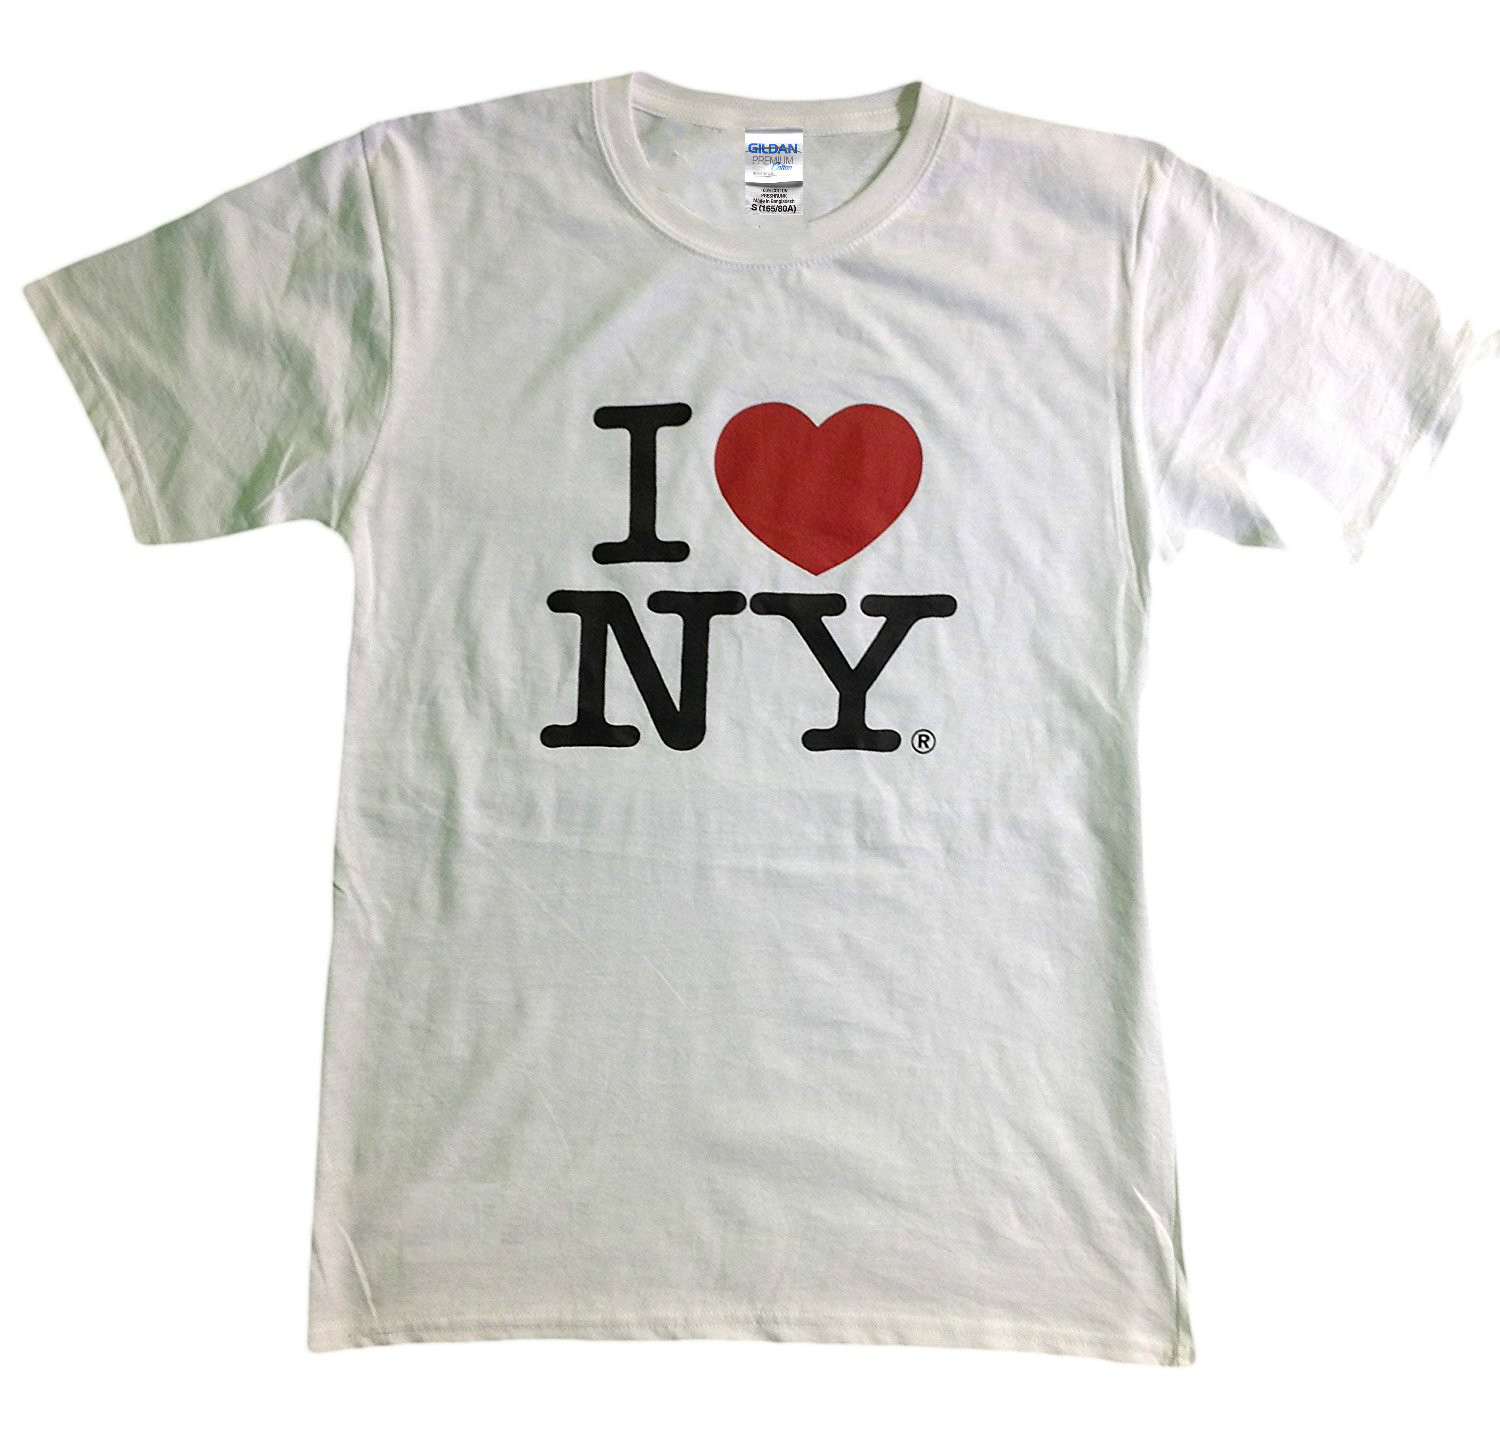 Men And Woman T <font><b>Shirt</b></font> Free Shipping <font><b>I</b></font> <font><b>Love</b></font> <font><b>Ny</b></font> New York Short Sleeve Screen Print Heart T <font><b>Shirt</b></font> White image